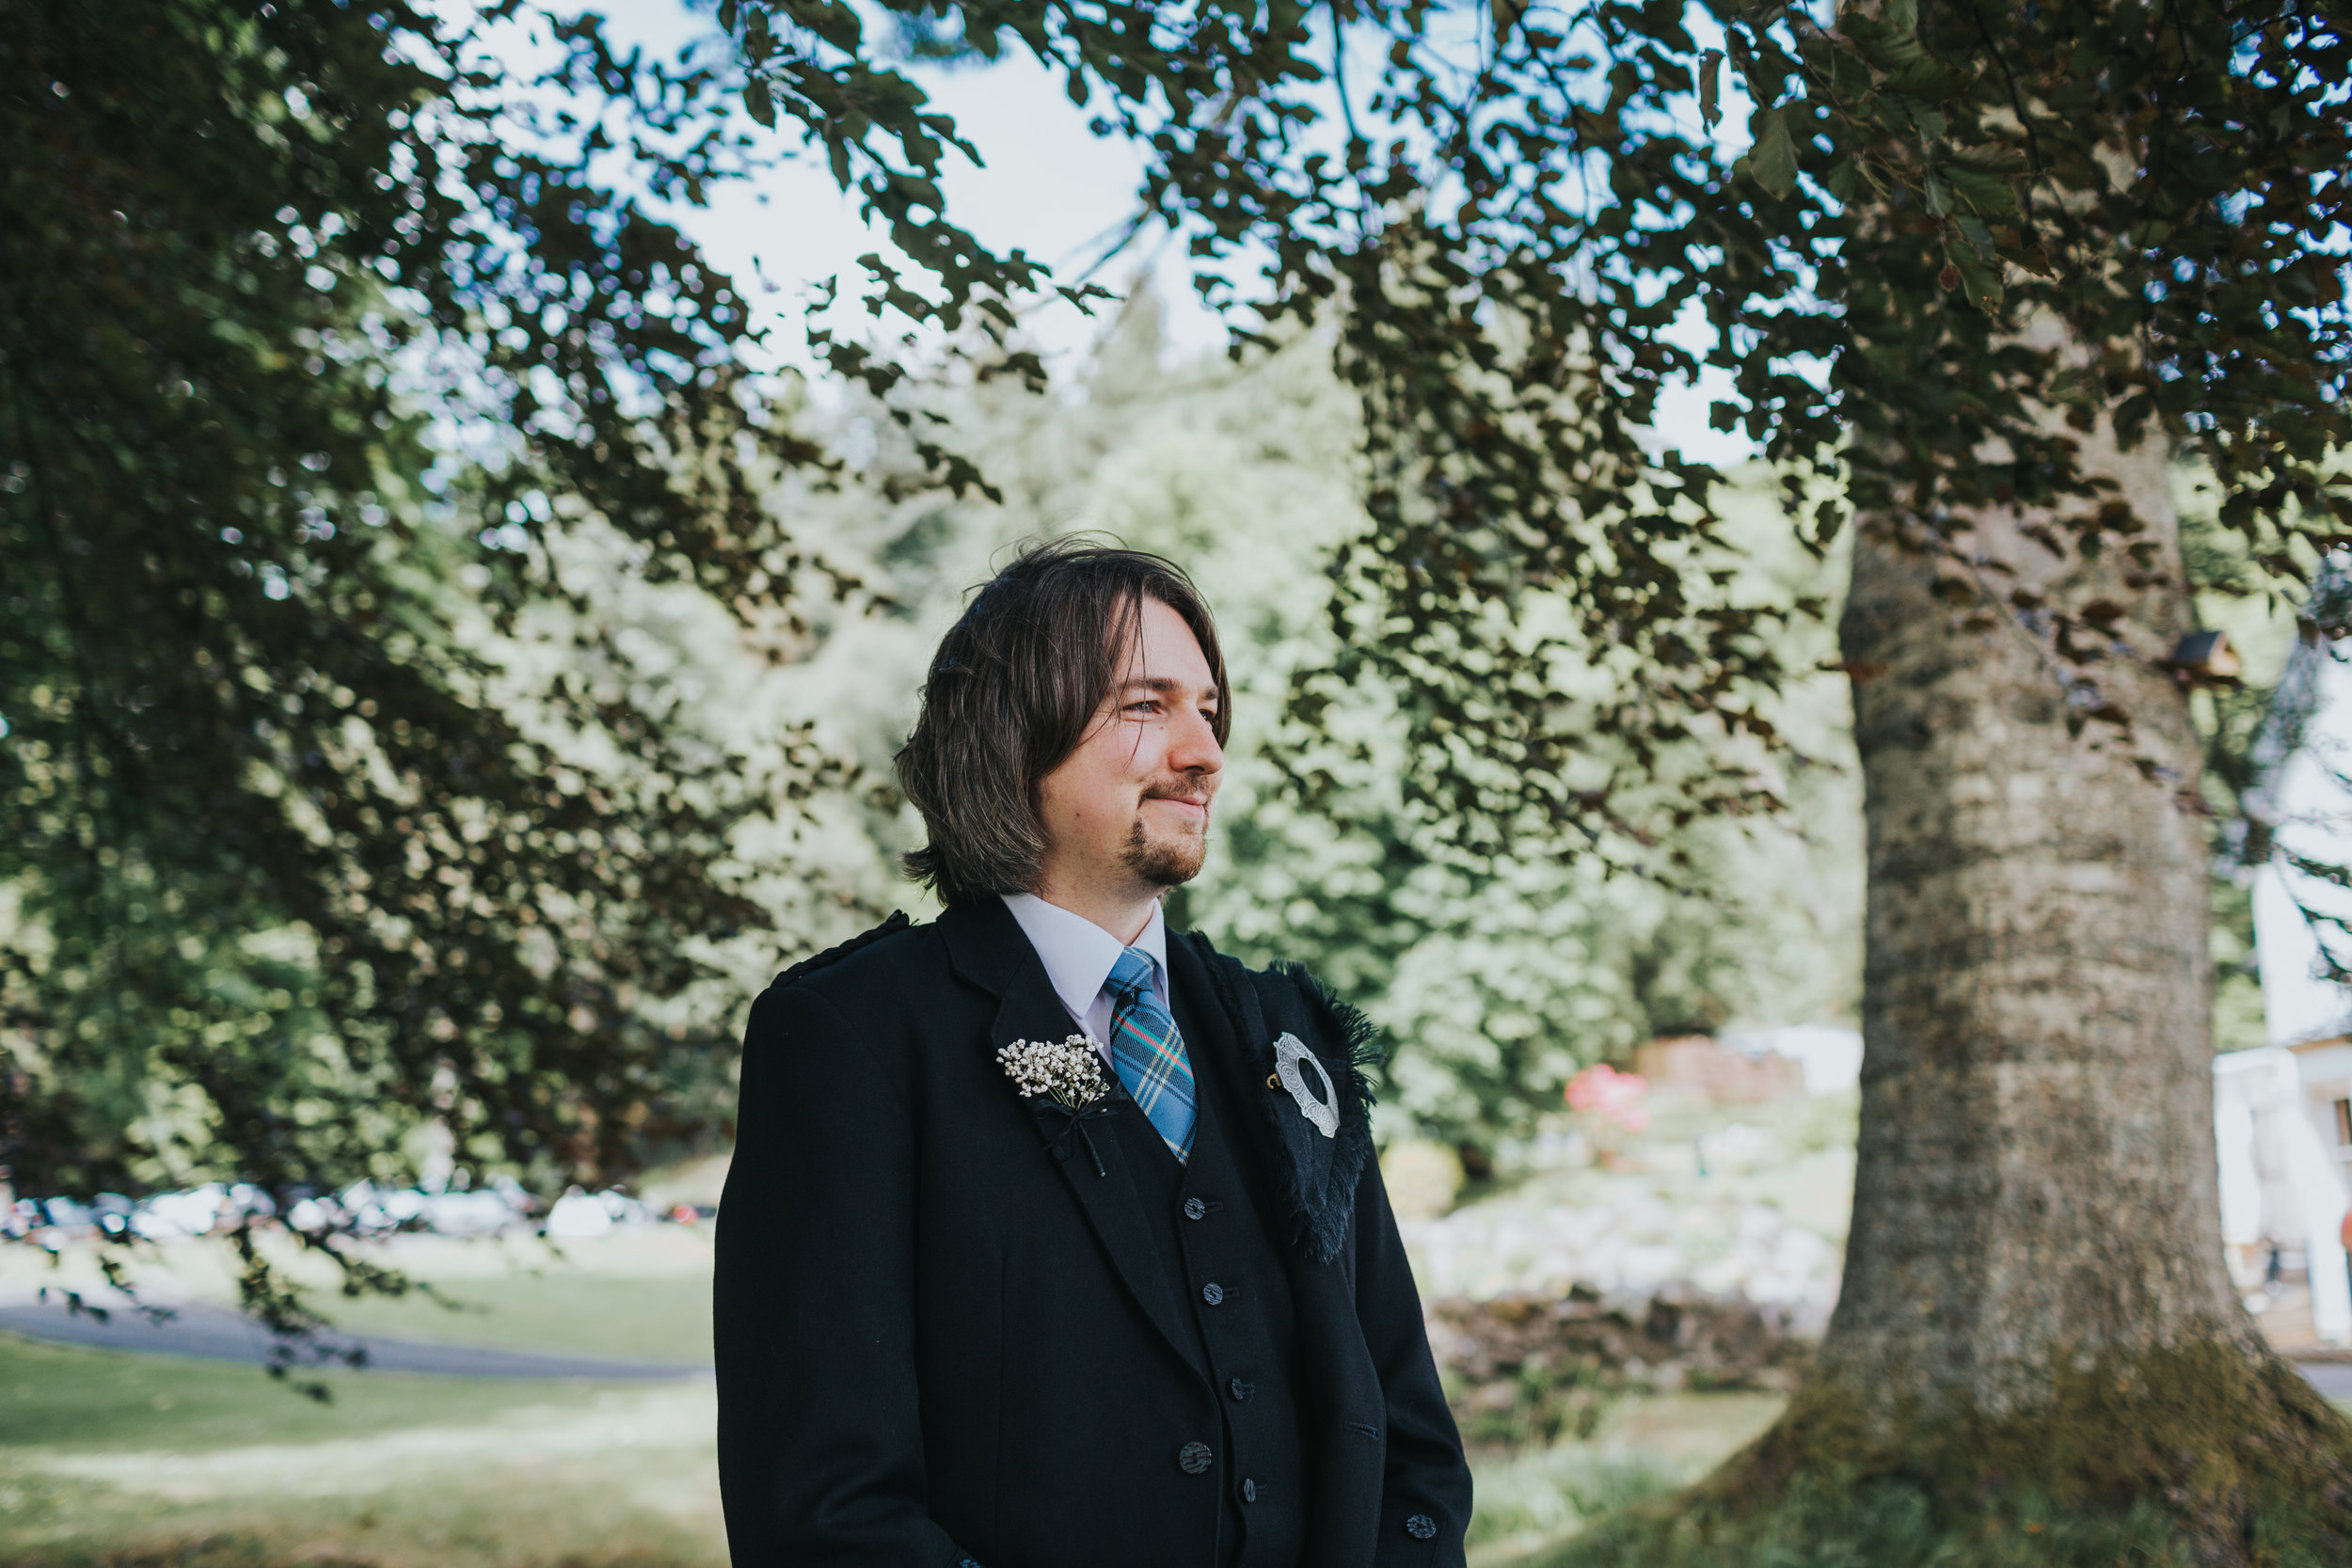 Groom smiles as he watches his bride come down the aisle.